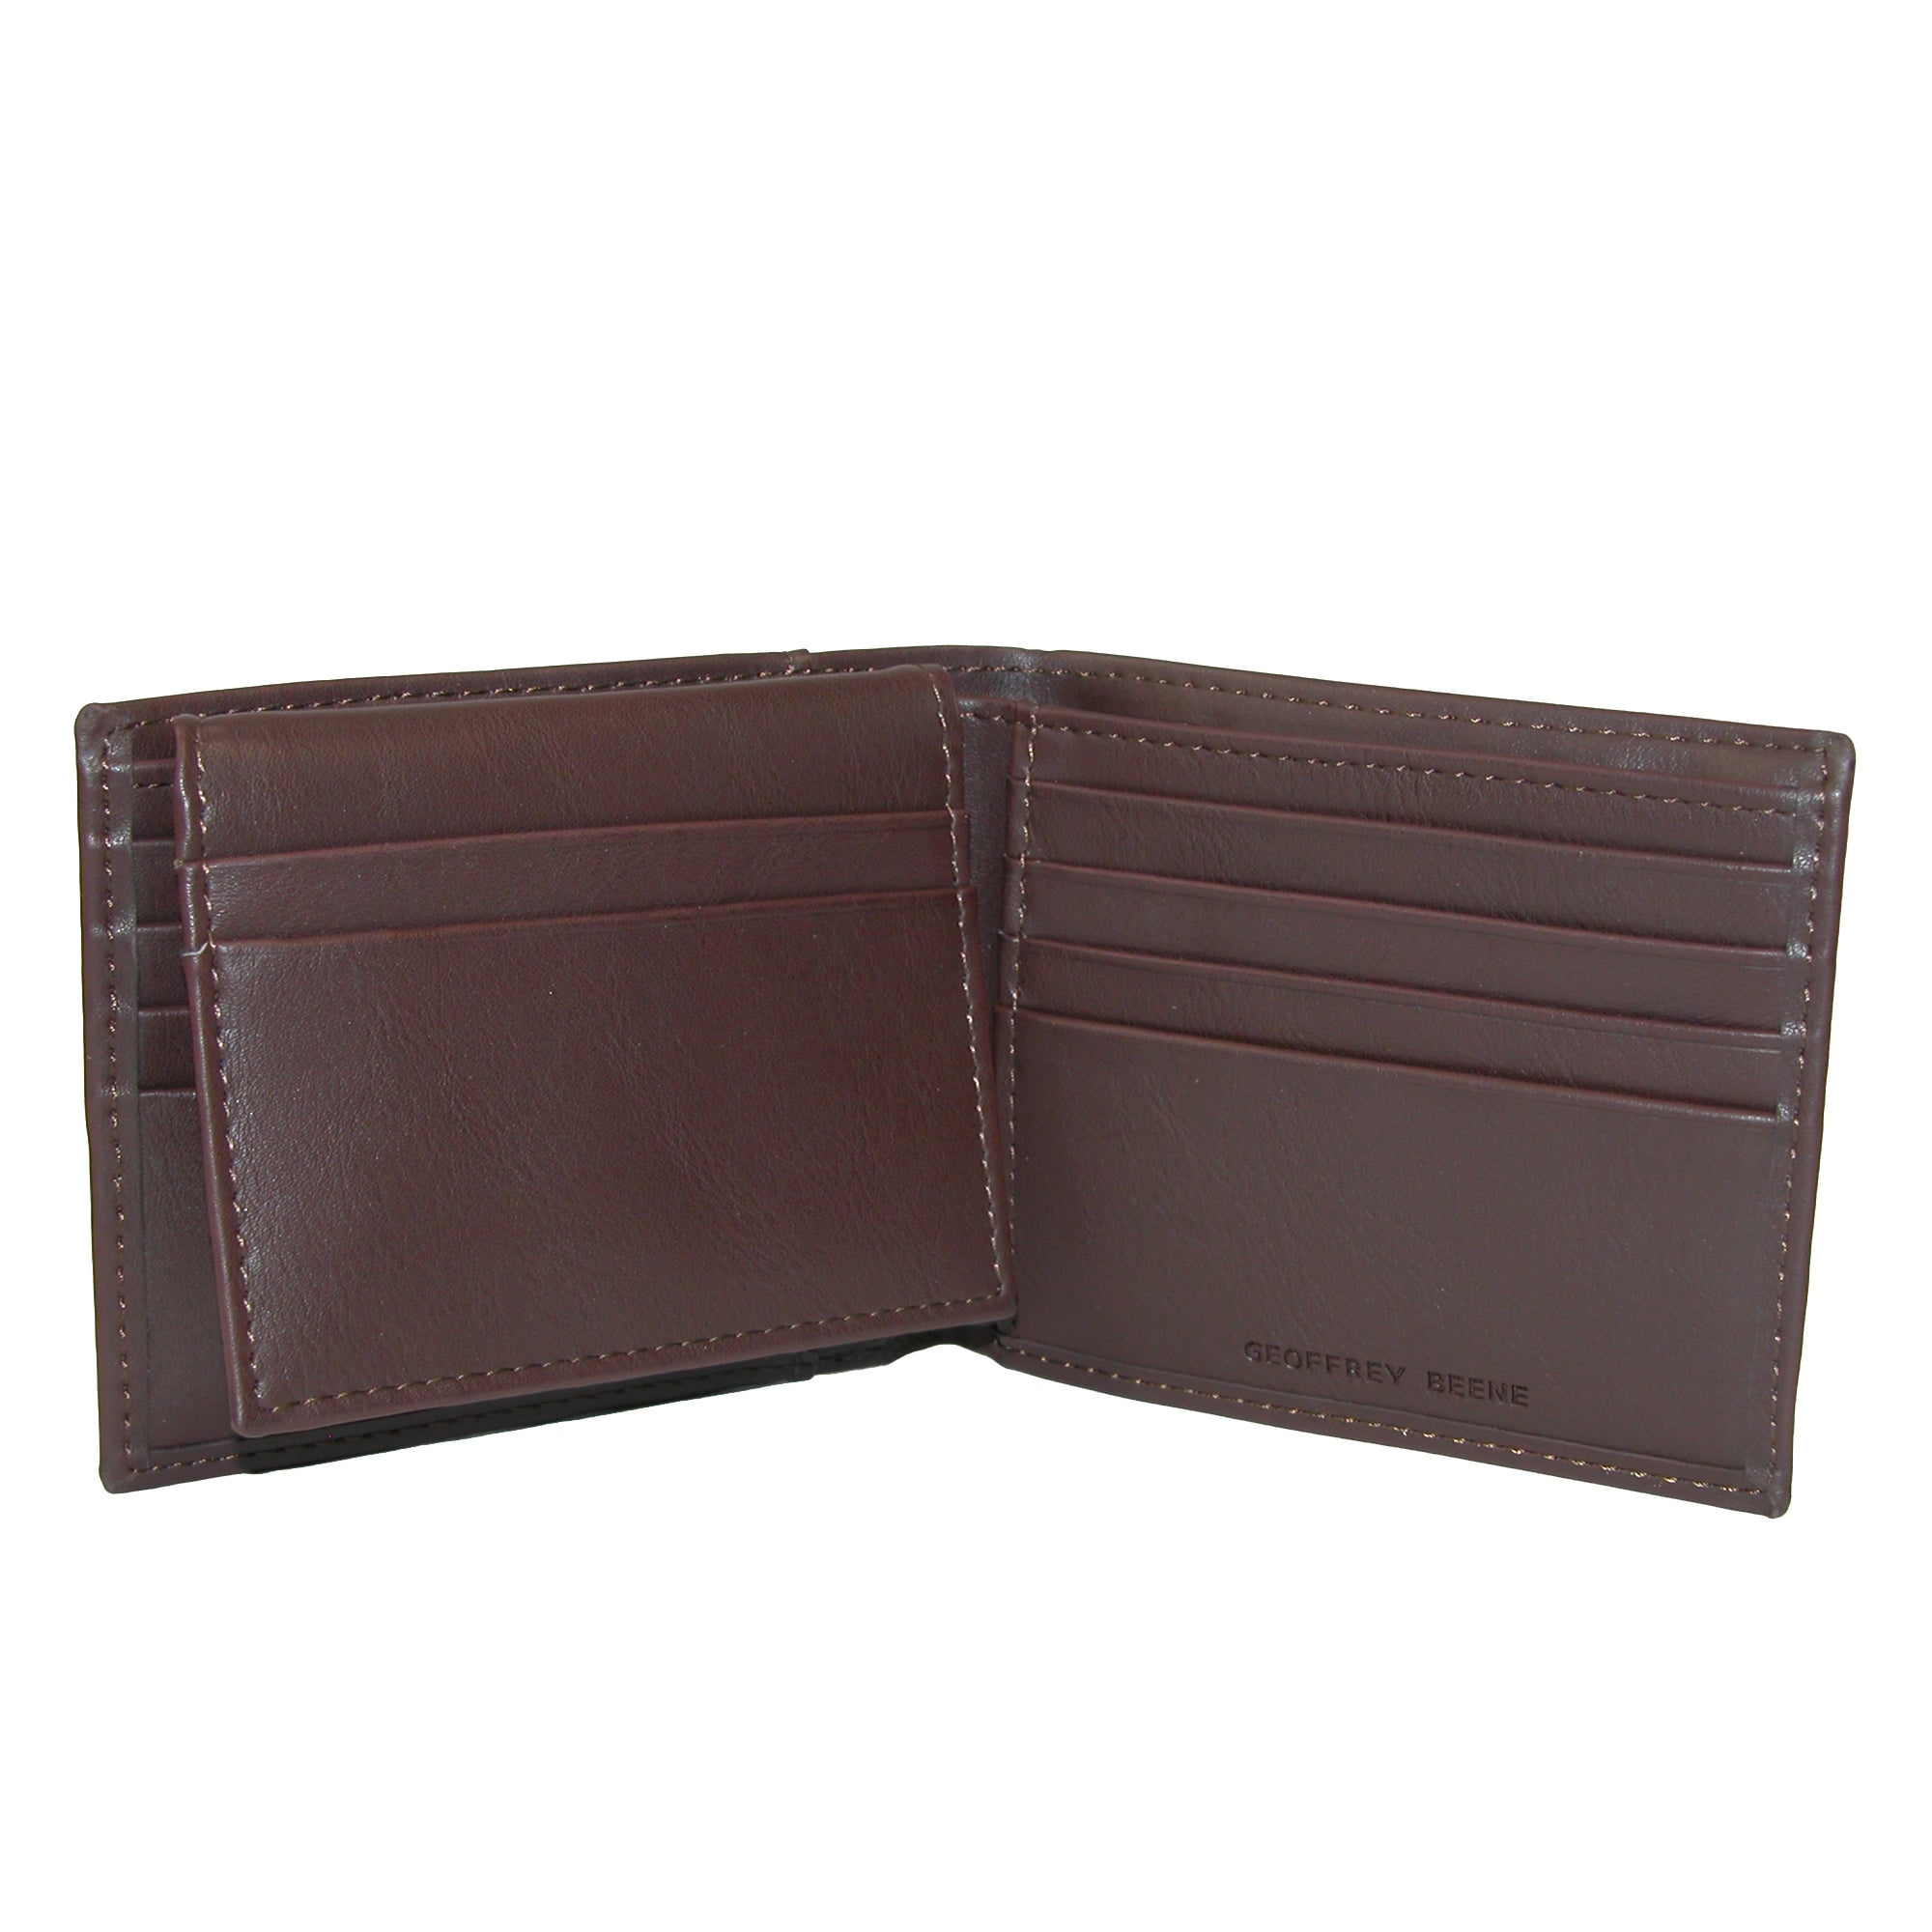 Geoffrey Beene Mens RFID Protected Flip-Up Passcase Bifold Wallet with ID